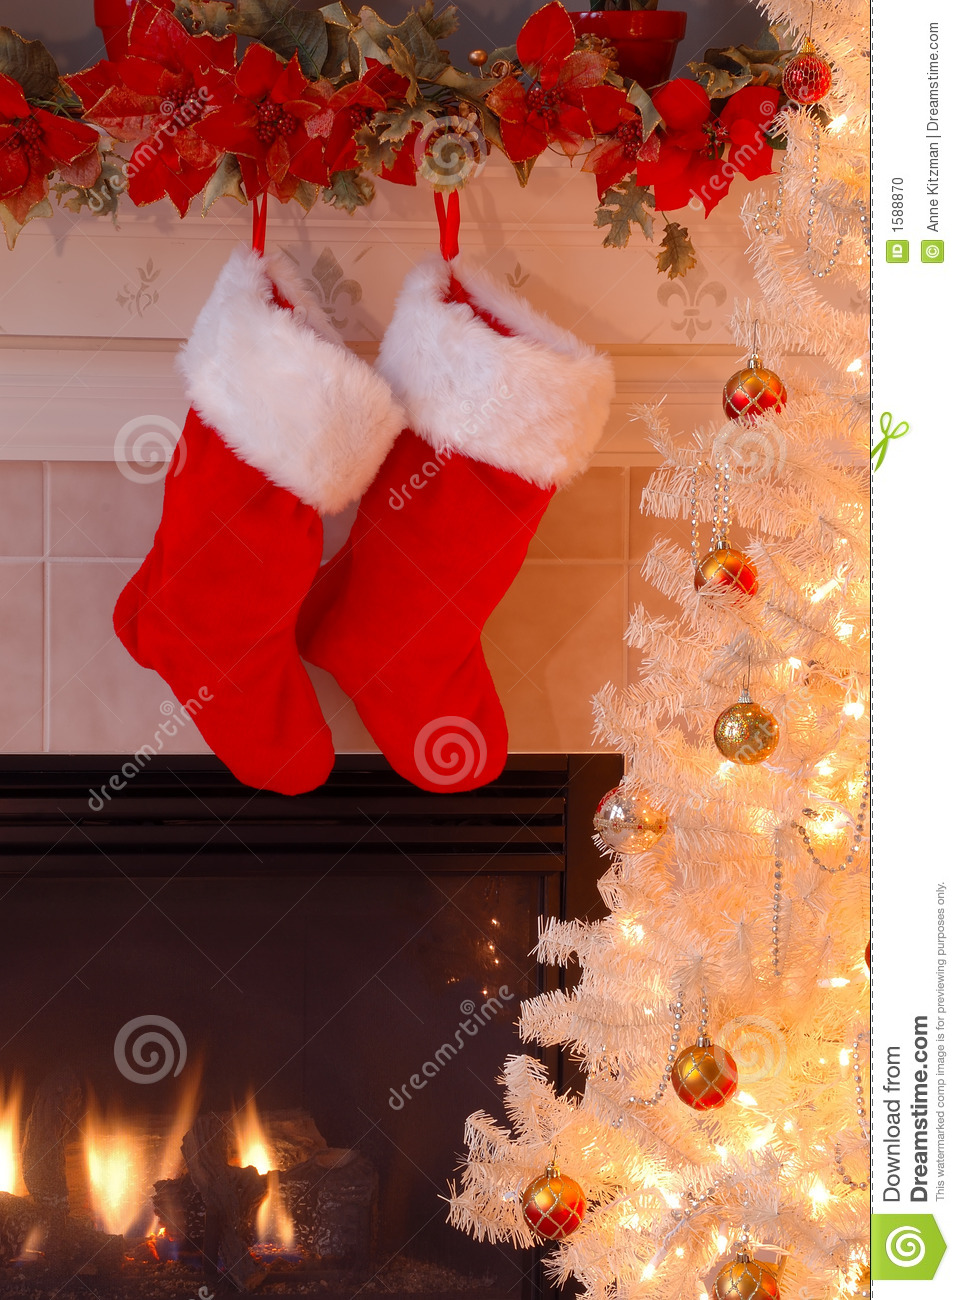 Christmas Stockings By The Fireplace Stock Photo Image